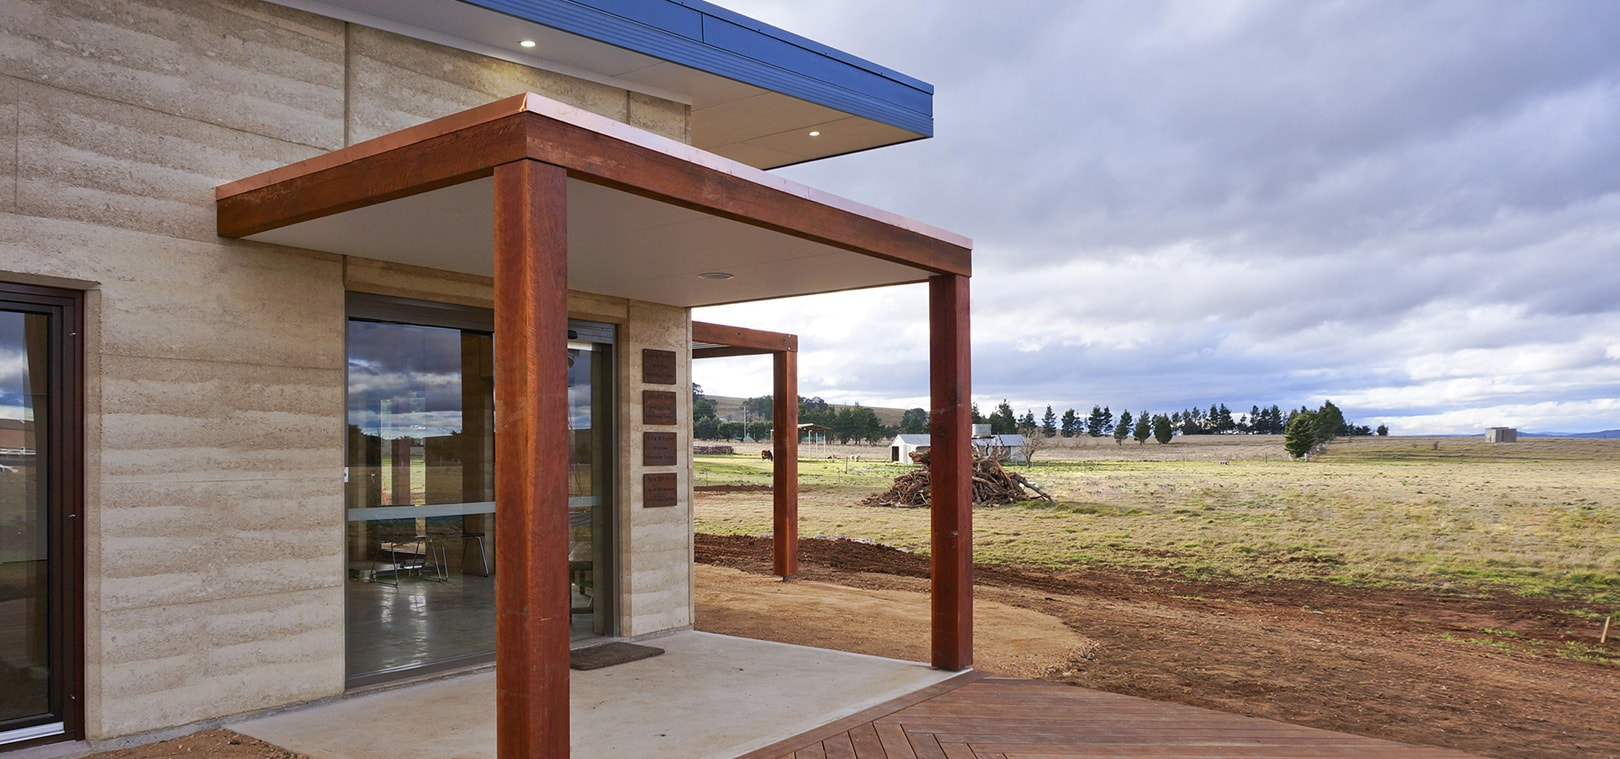 Rammed Earth building in a country landscape. Vet hospital by Architecture Republic, Bowral